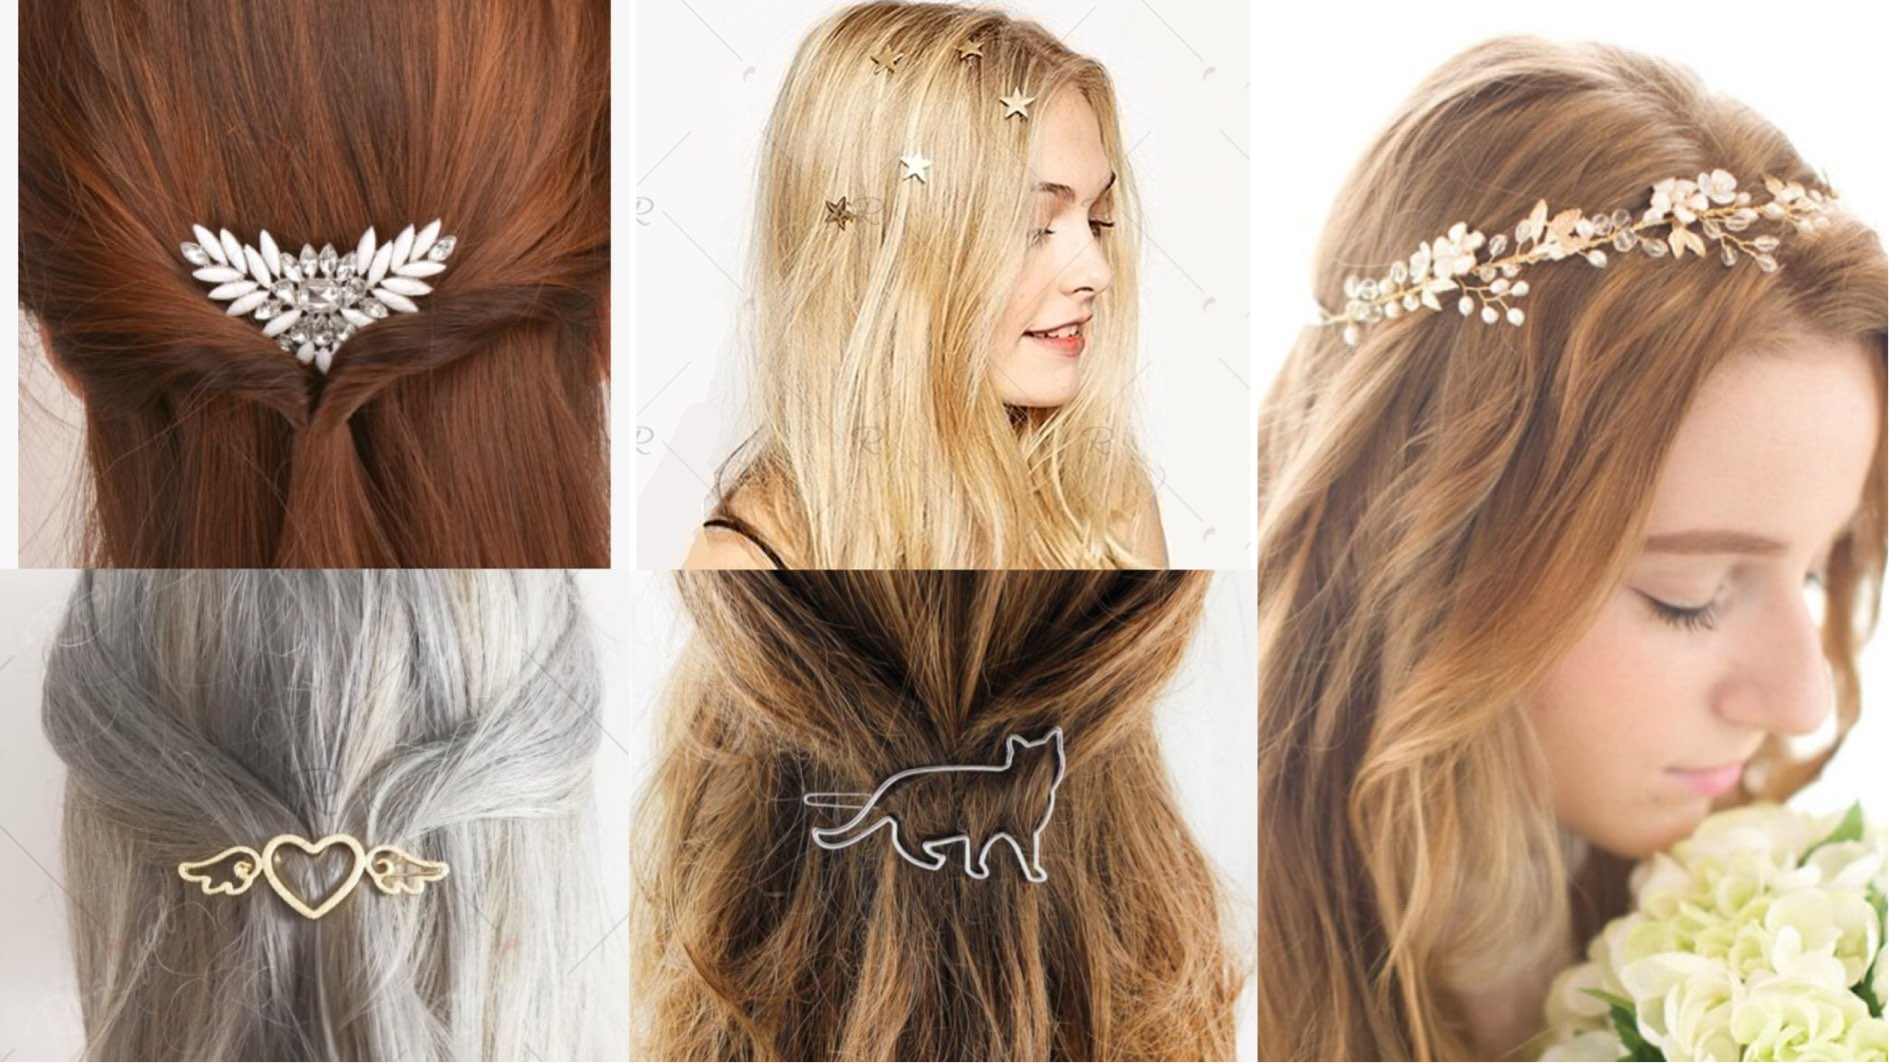 Hair accessories you would love to try| For all face shapes